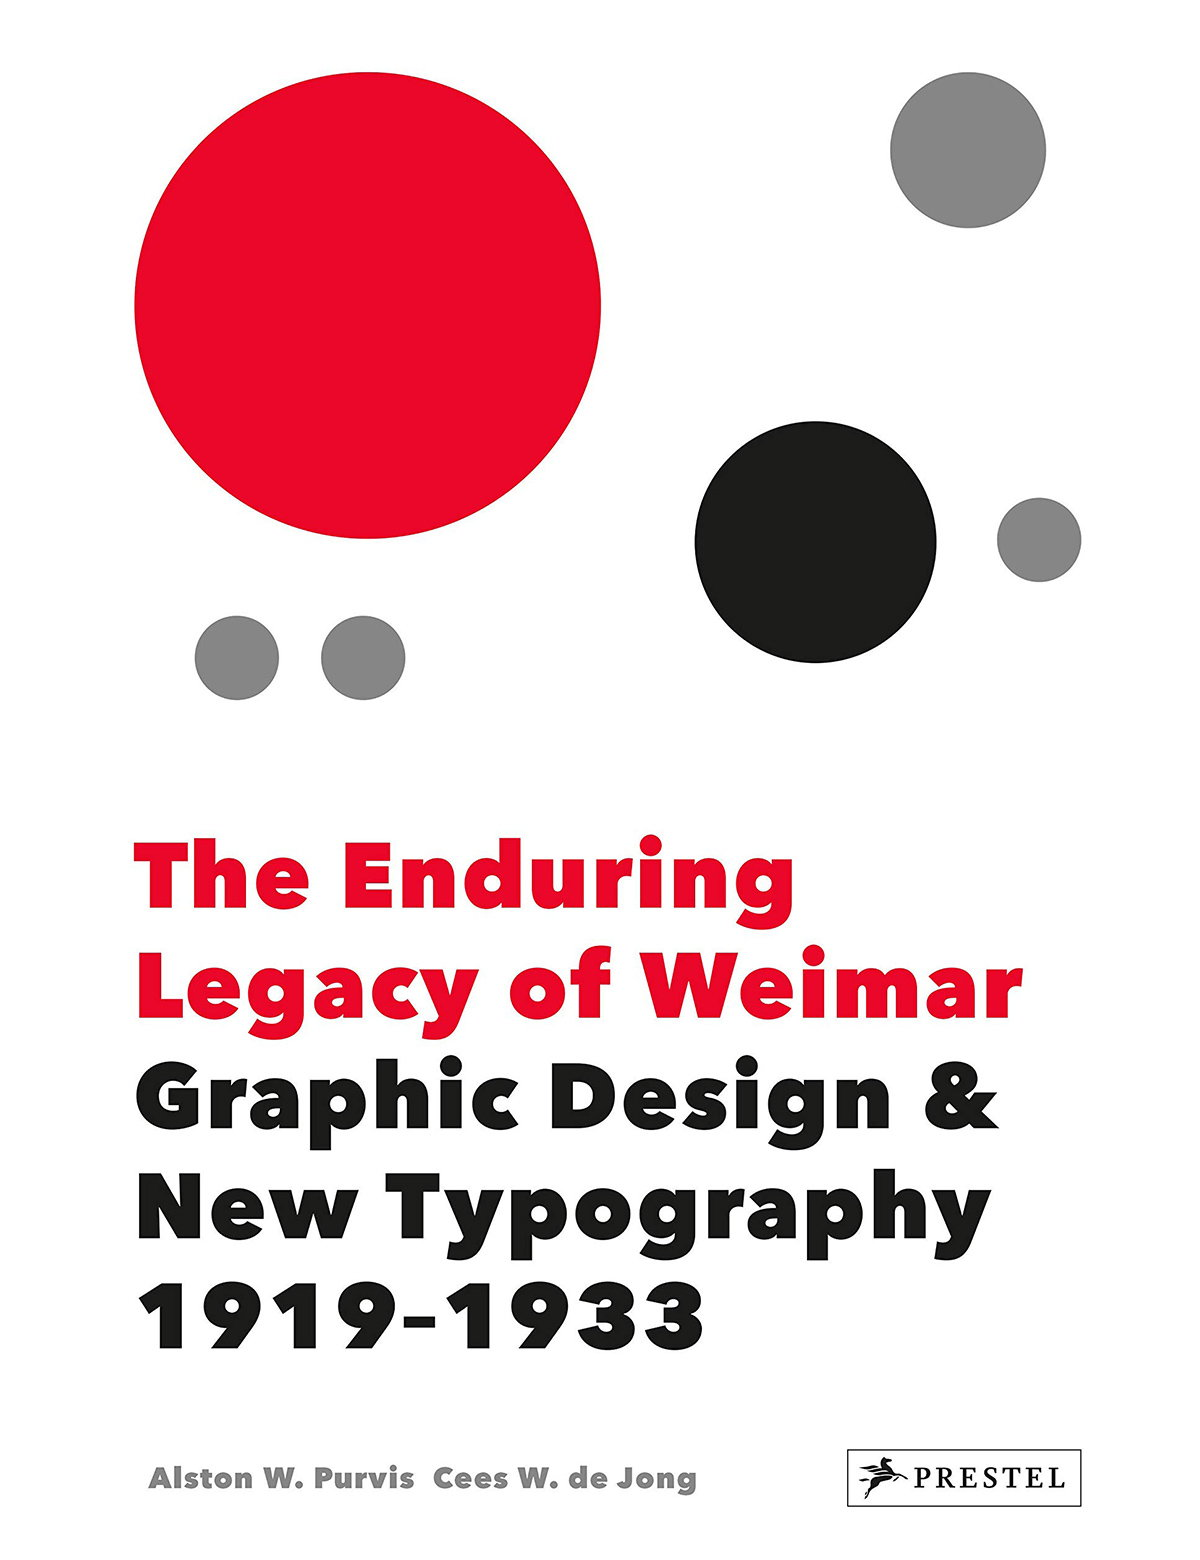 The Enduring Legacy of Weimar - Graphic Design and New Typography 1919-1933